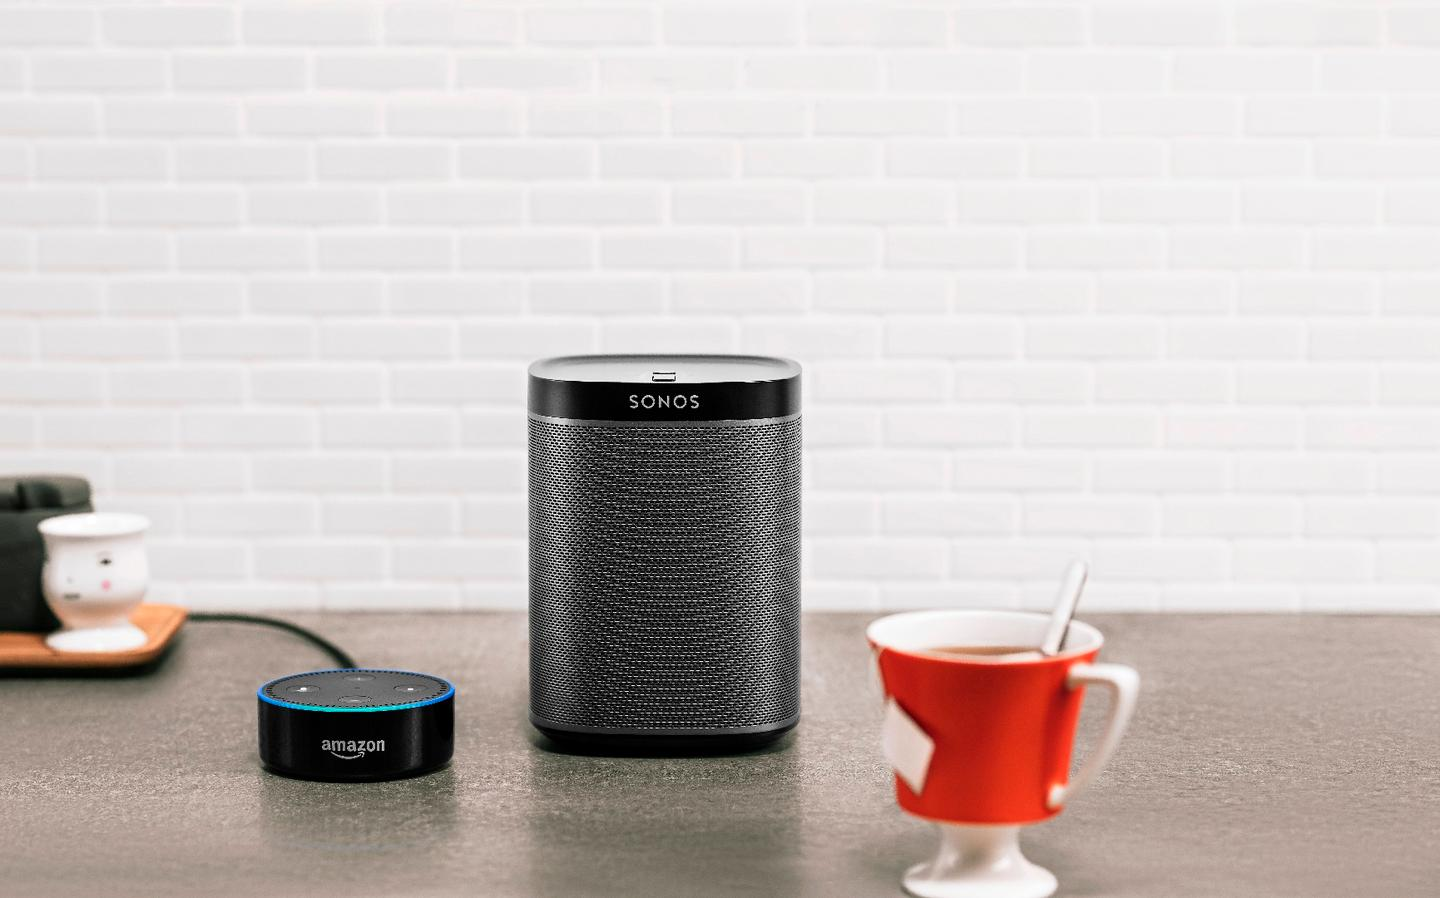 Existing Sonos speakers are compatible with Amazon Echo and Dot devices